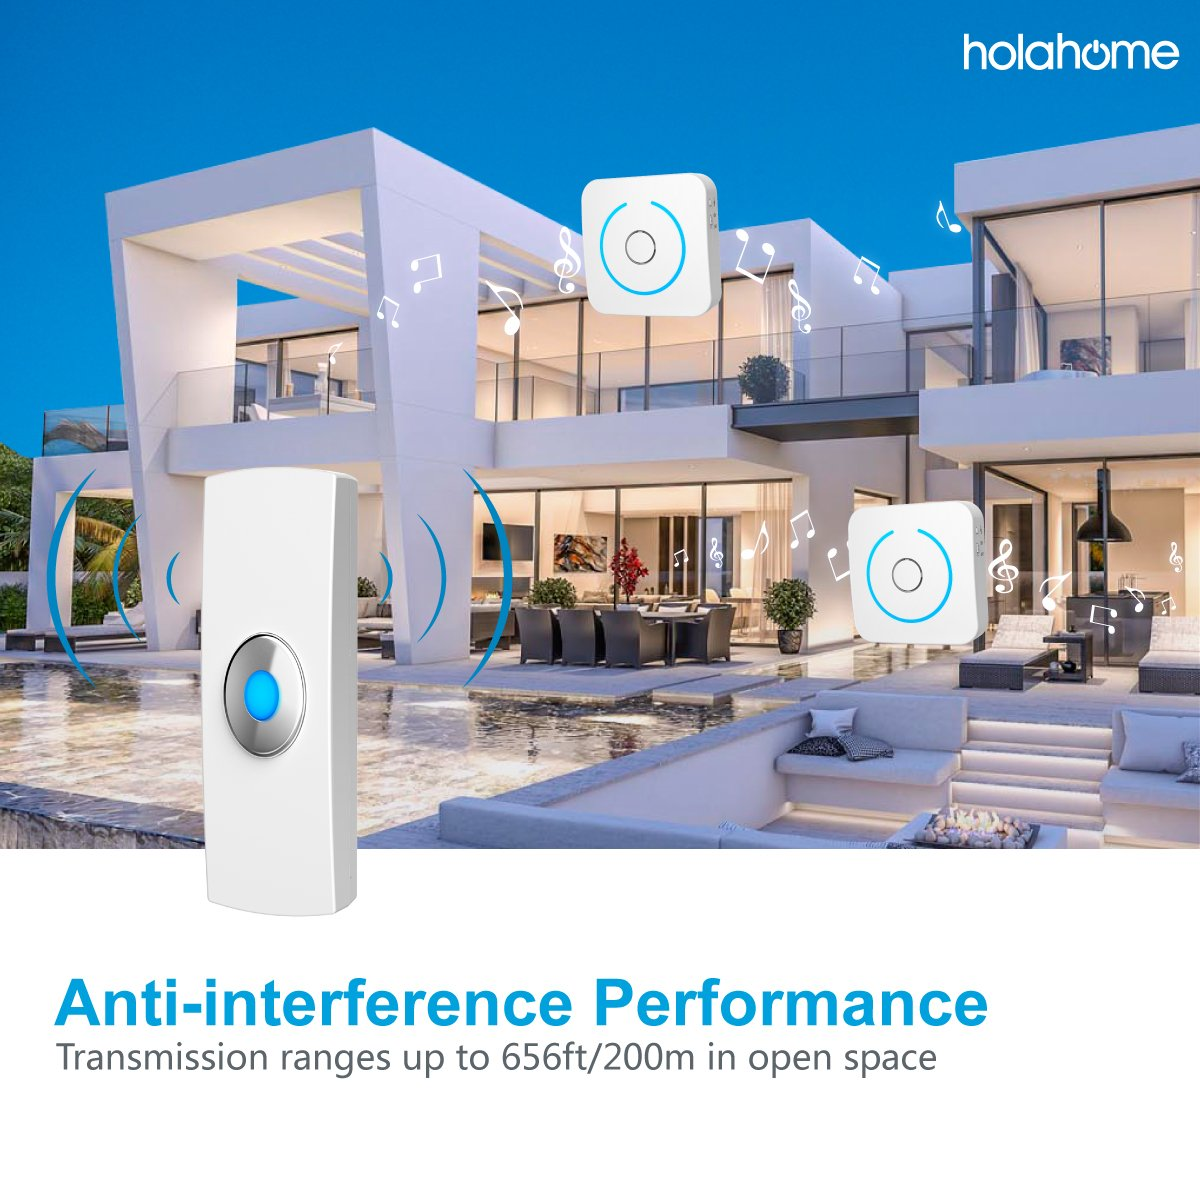 Holahome Wireless Doorbell - Waterproof Portable Door Bell Chime Kit Push Button with 2 Portable Receivers 32 Melodies Wireless Door Alarm Chime Long Range Battery Operated for Home Office White by holahome (Image #5)